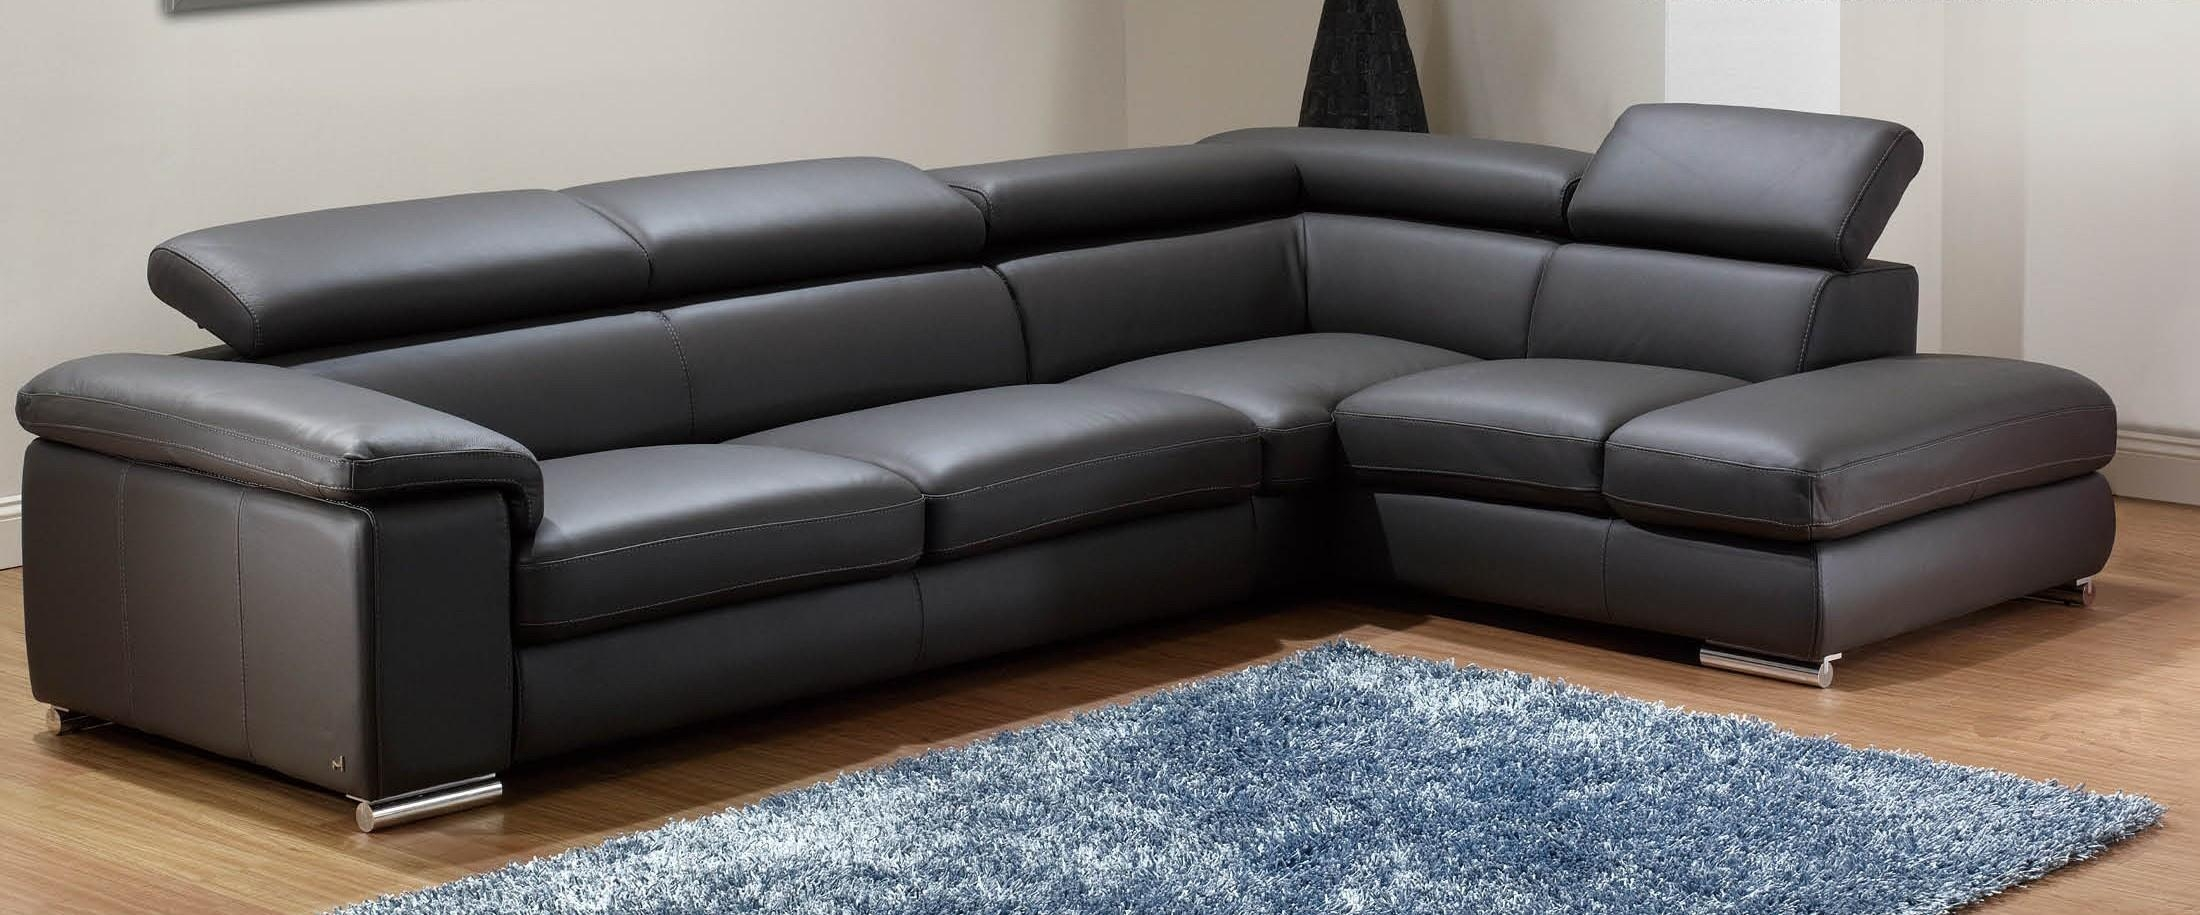 Sofas Center : Sofas Sectionals Comfortable Sleeper Sofa Big Lots Pertaining To Big Sofas Sectionals (Image 14 of 15)